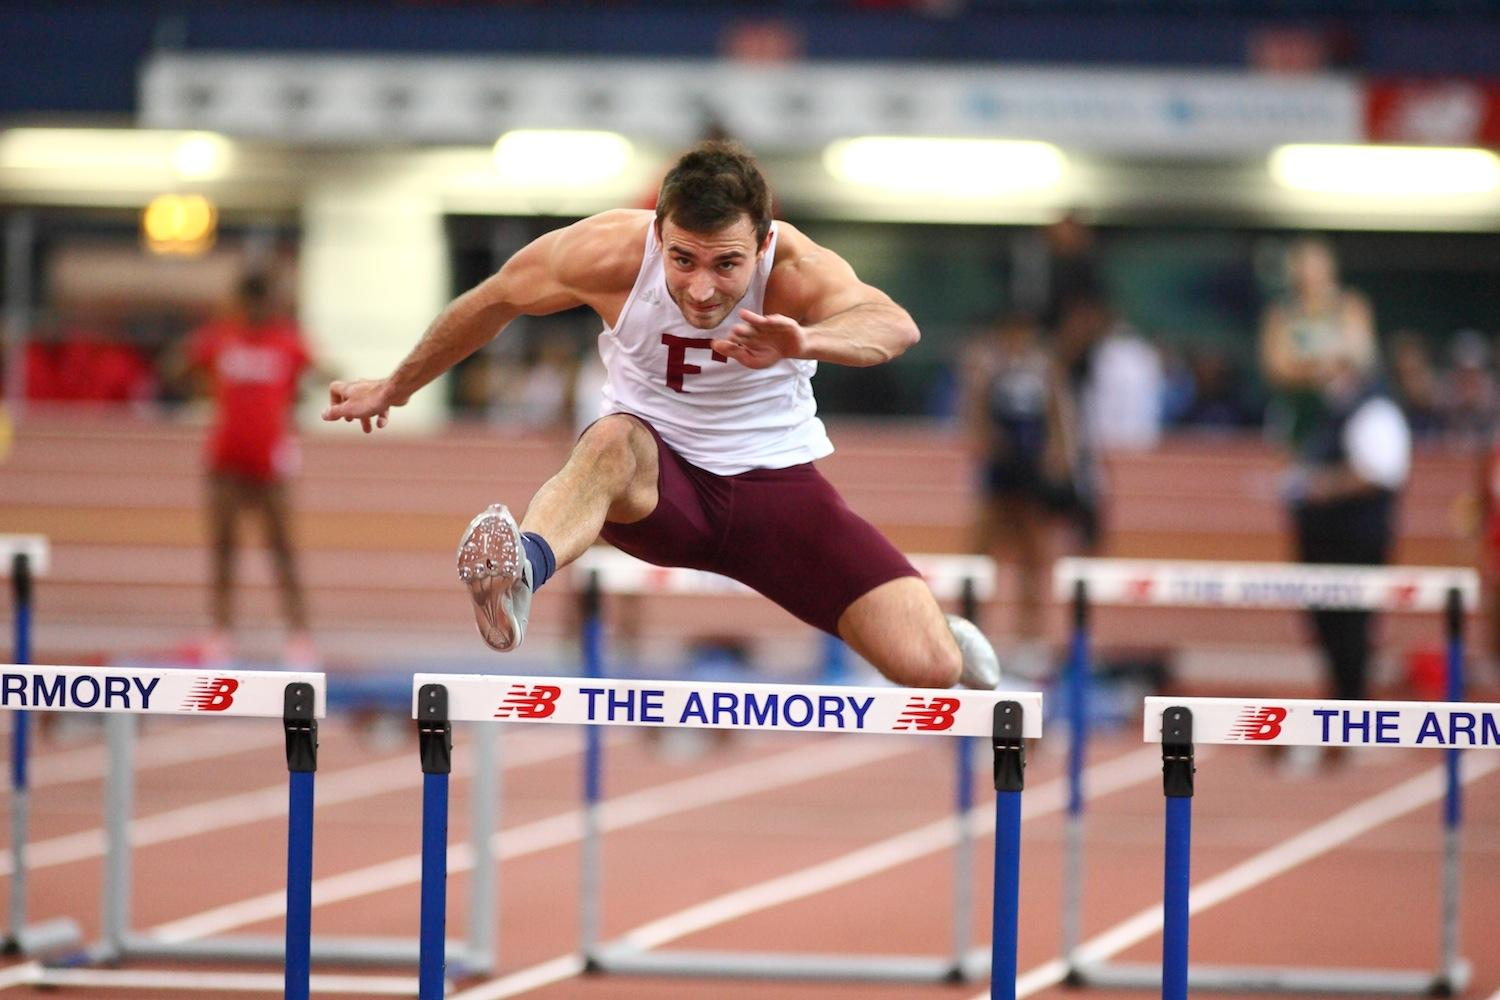 Sam Houston, FCRH '14, earned Second Team All-Atlantic 10 honors with his second-place finish in the heptathlon. (Courtesy of Fordham Sports)